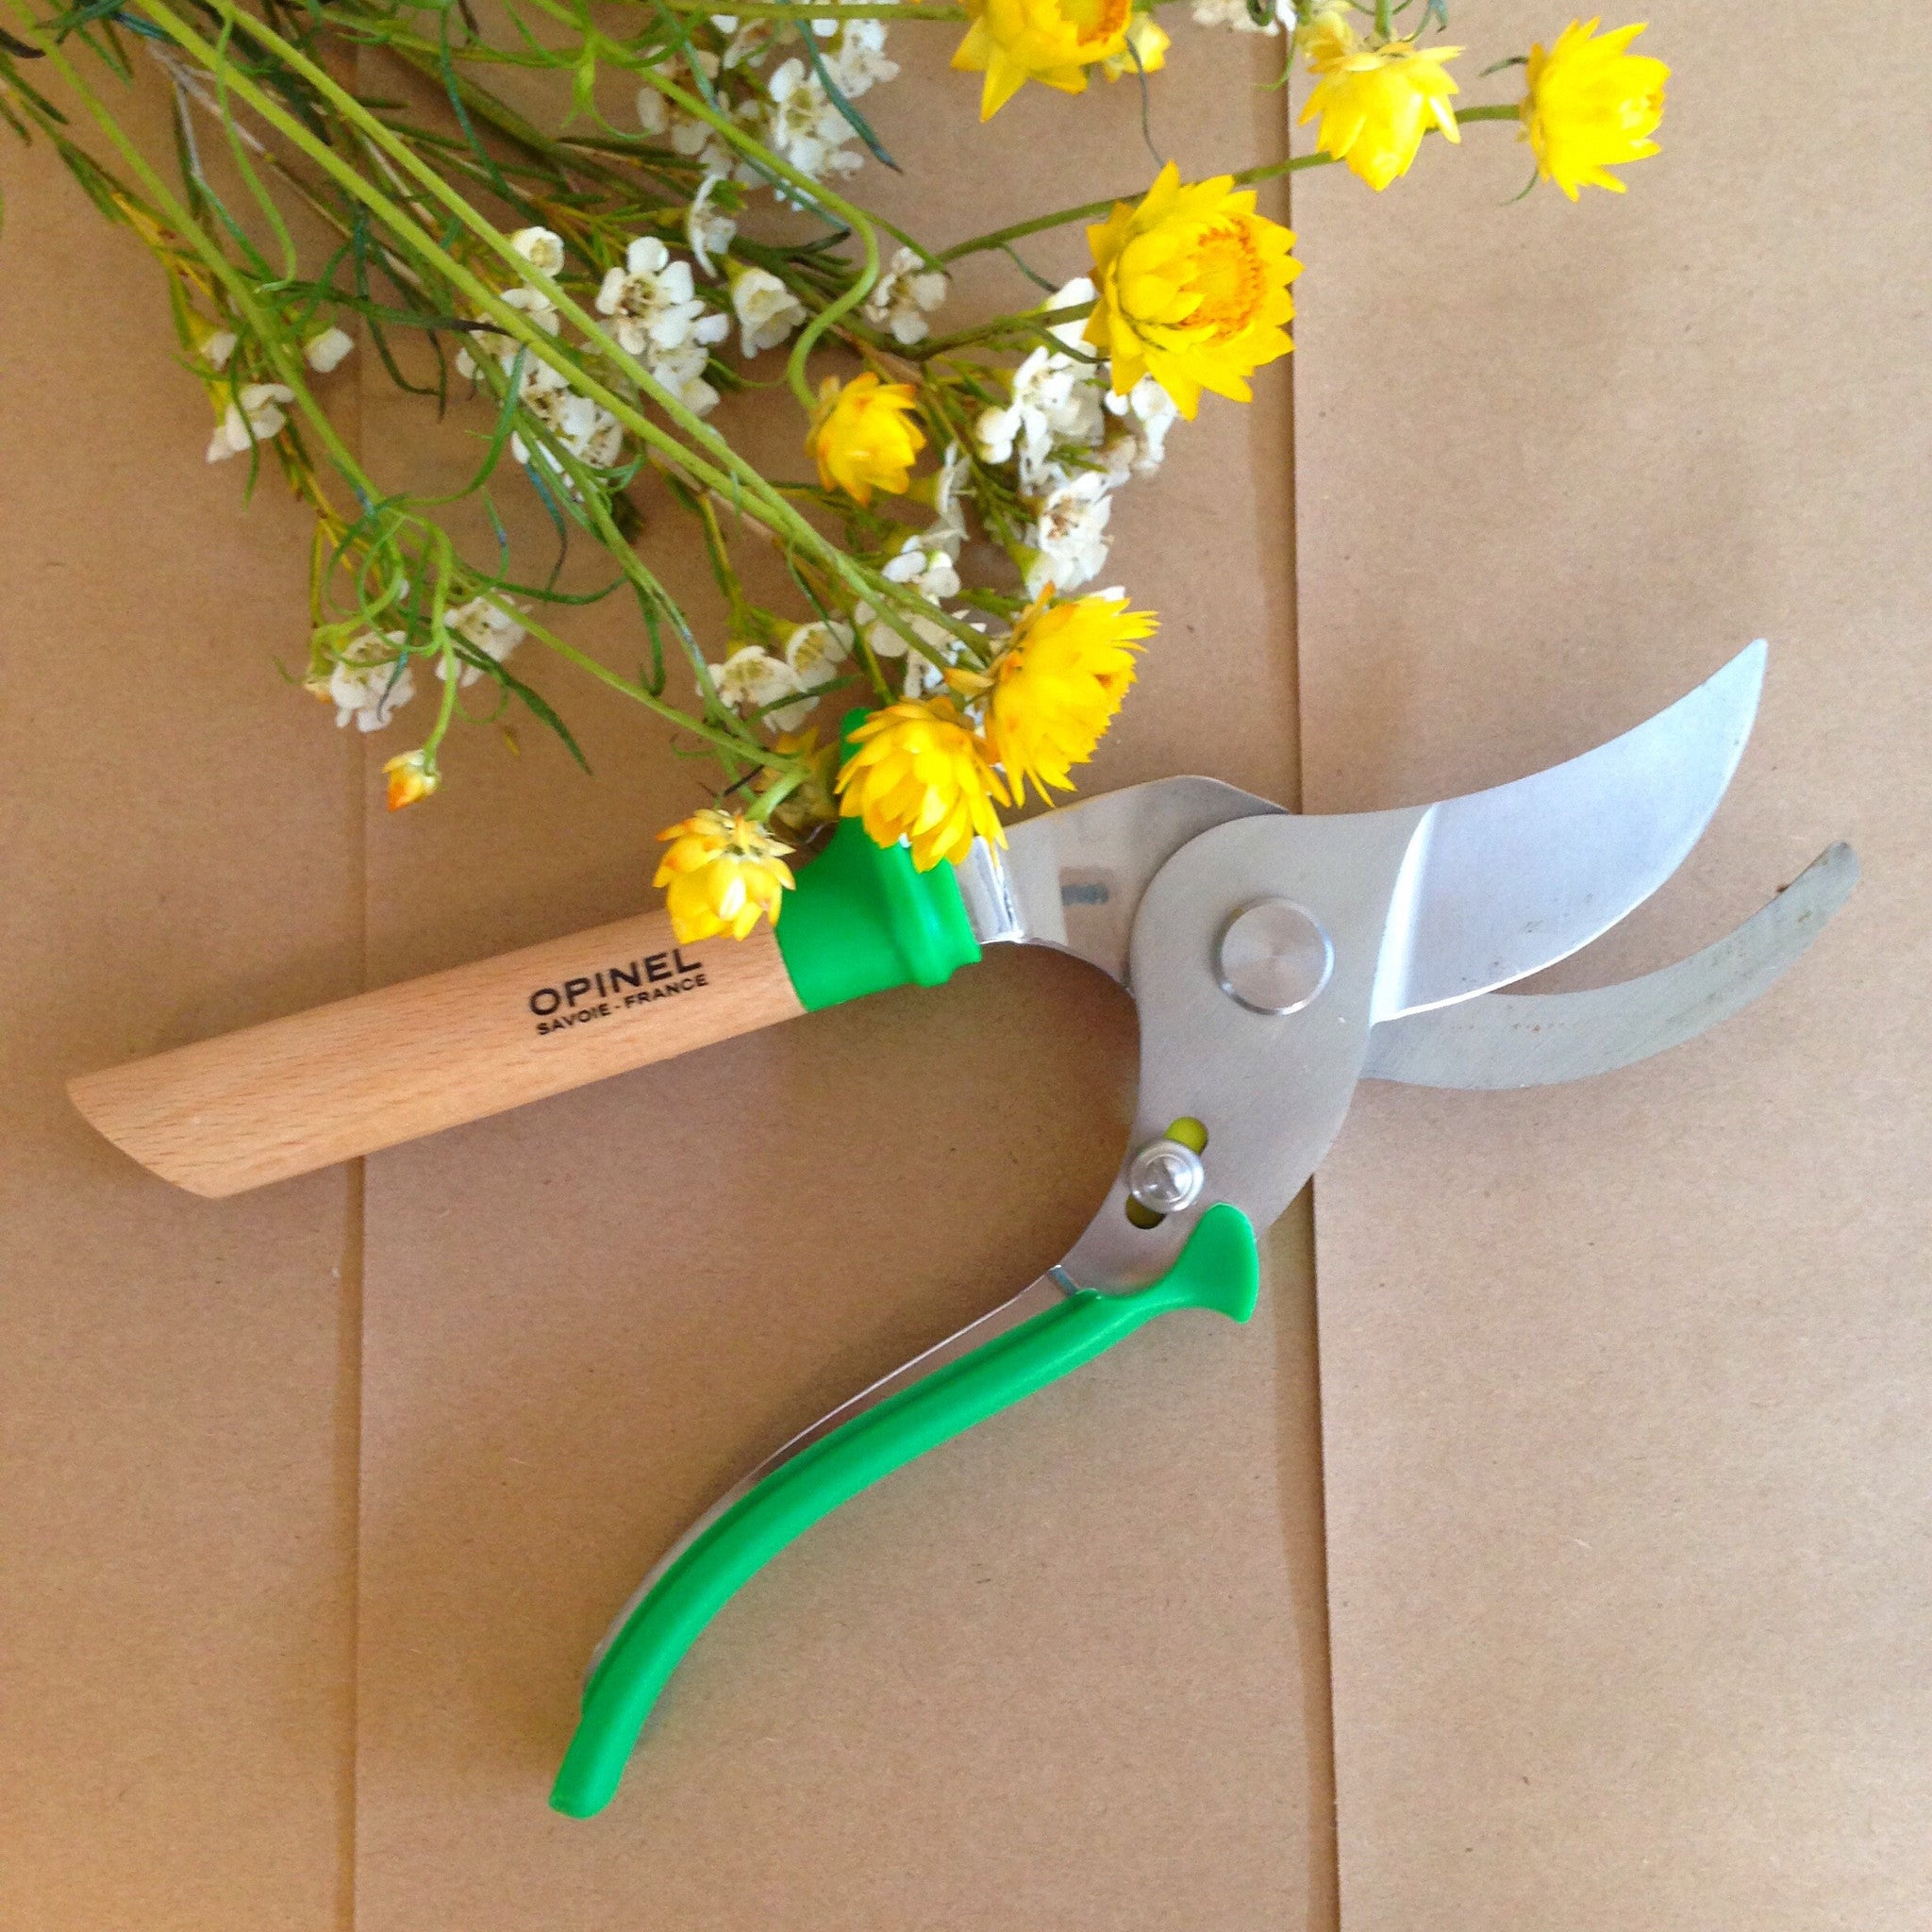 Opinel - Secateurs (two colours)